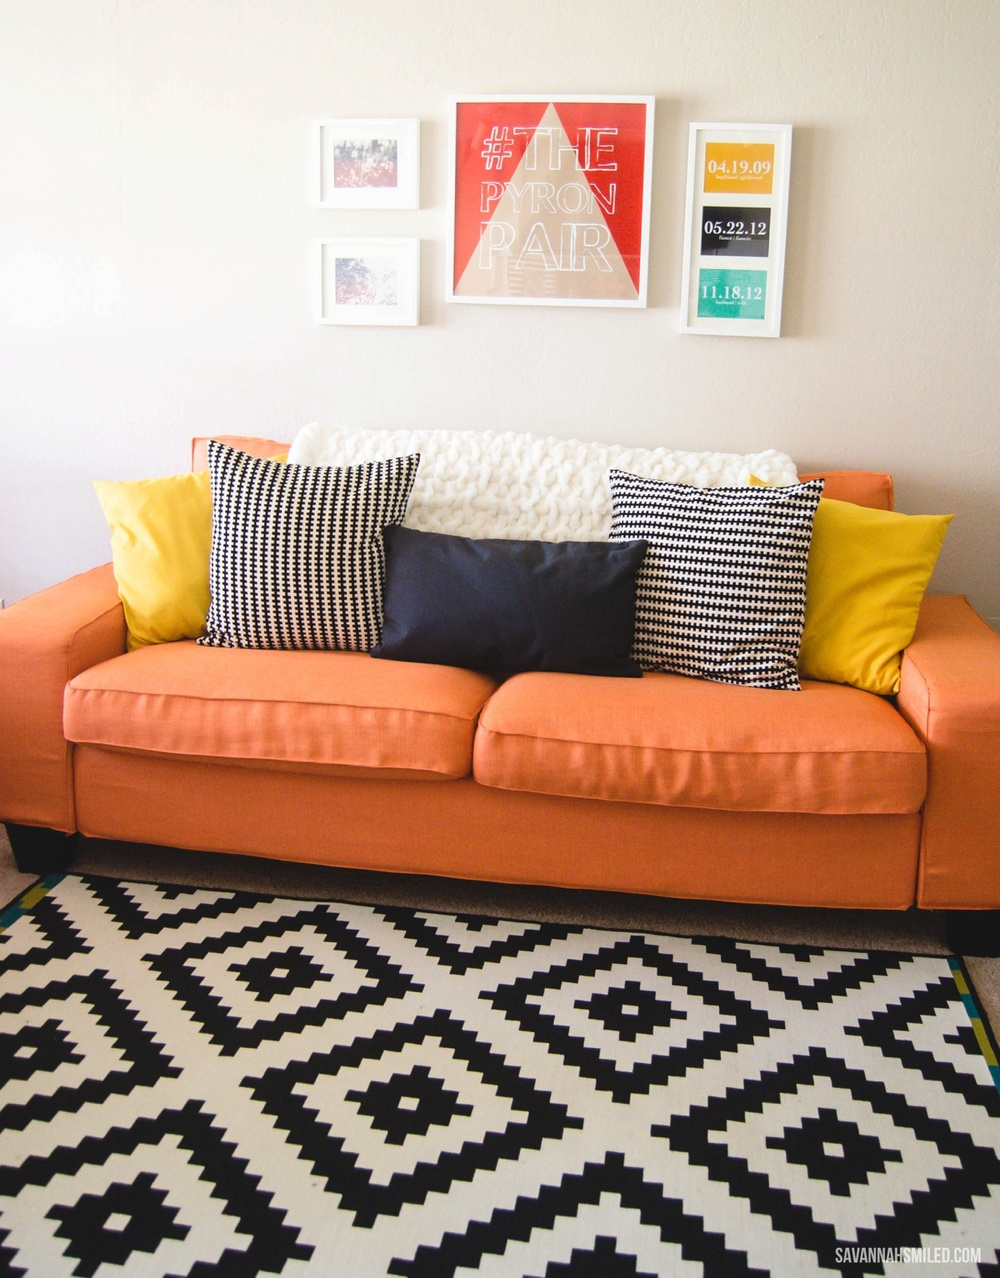 ikea-kivik-orange-sofa-covers.jpg